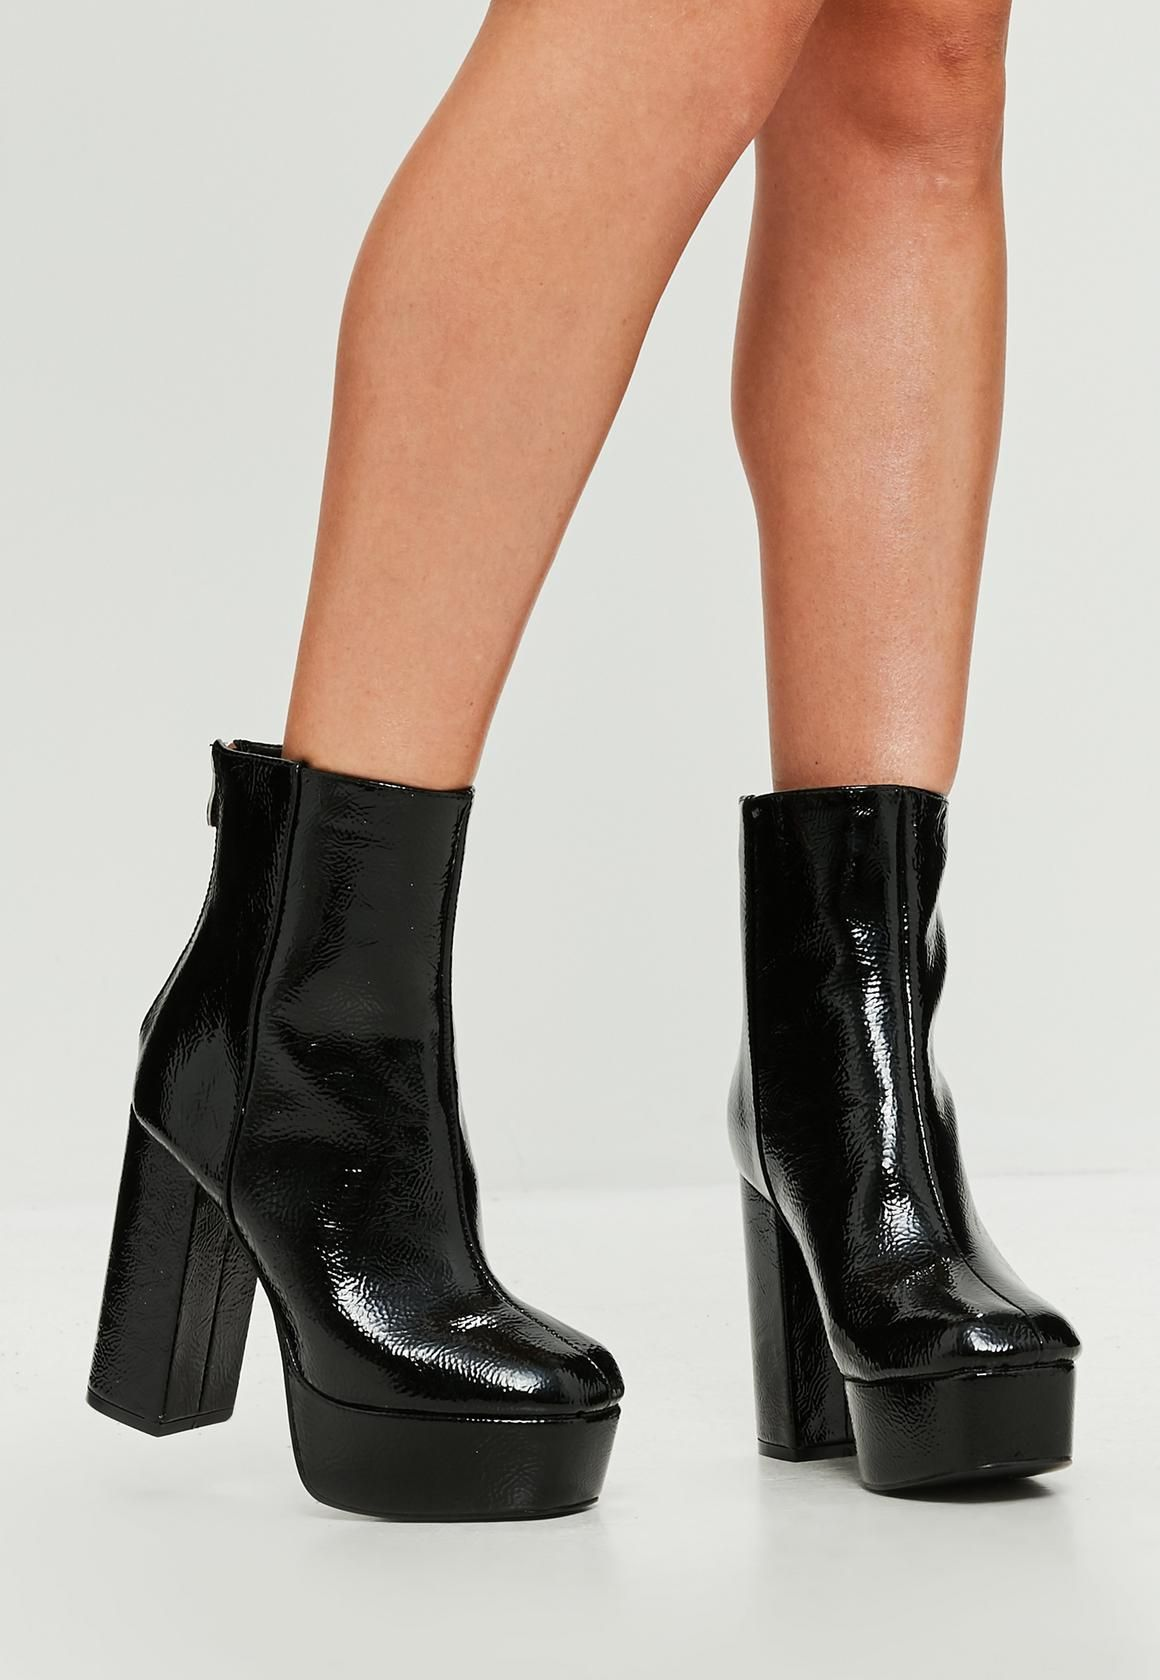 d10b0d5ab736 Missguided - Black Vinyl Platform Heeled Ankle Boots